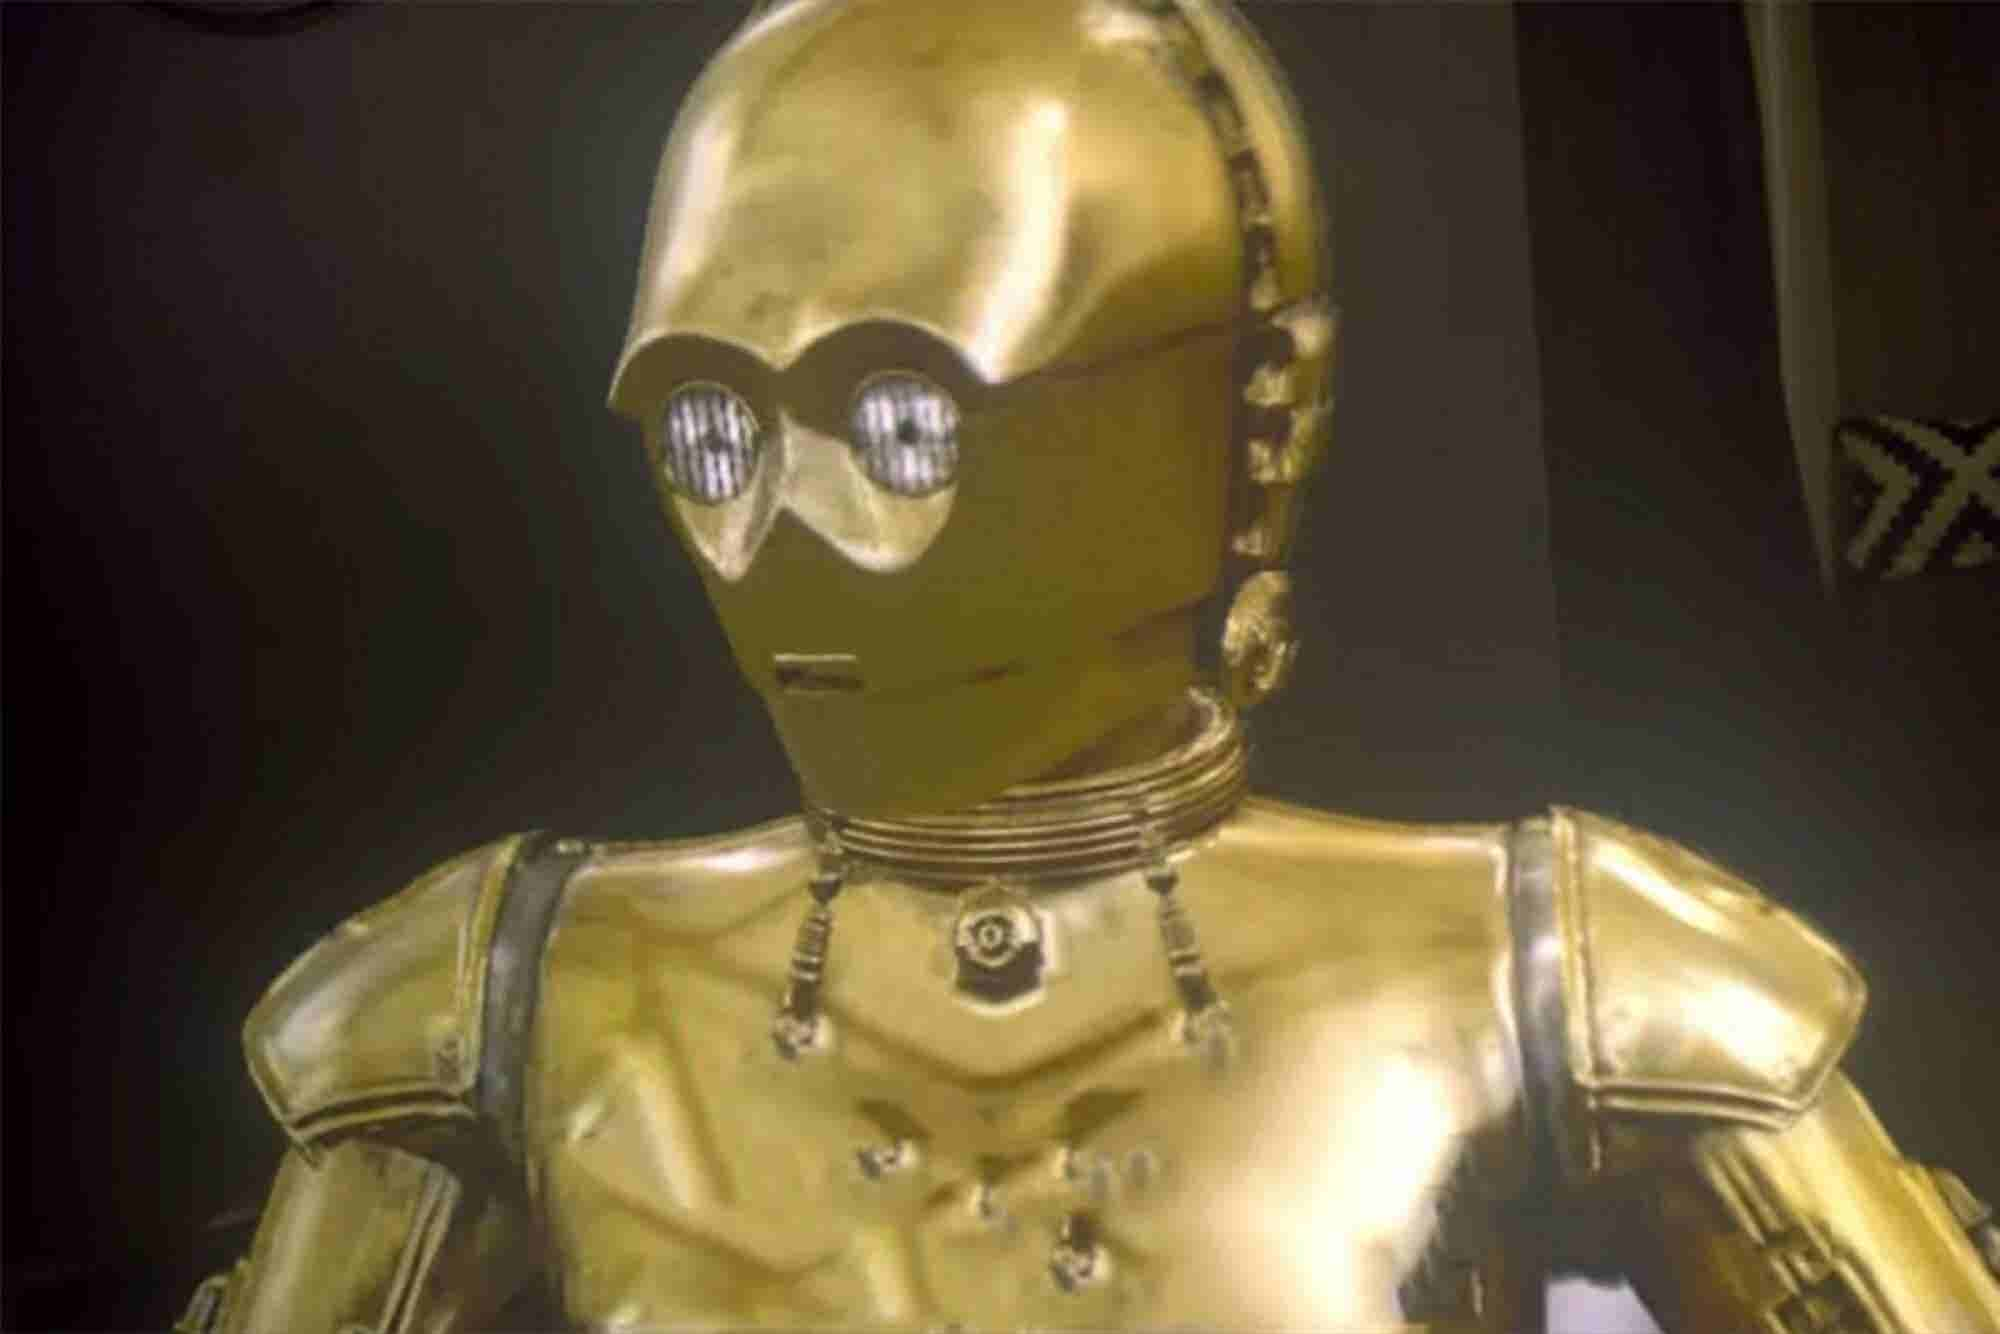 VR Startup Magic Leap Wants You to Save a Seat on the Couch for C-3PO